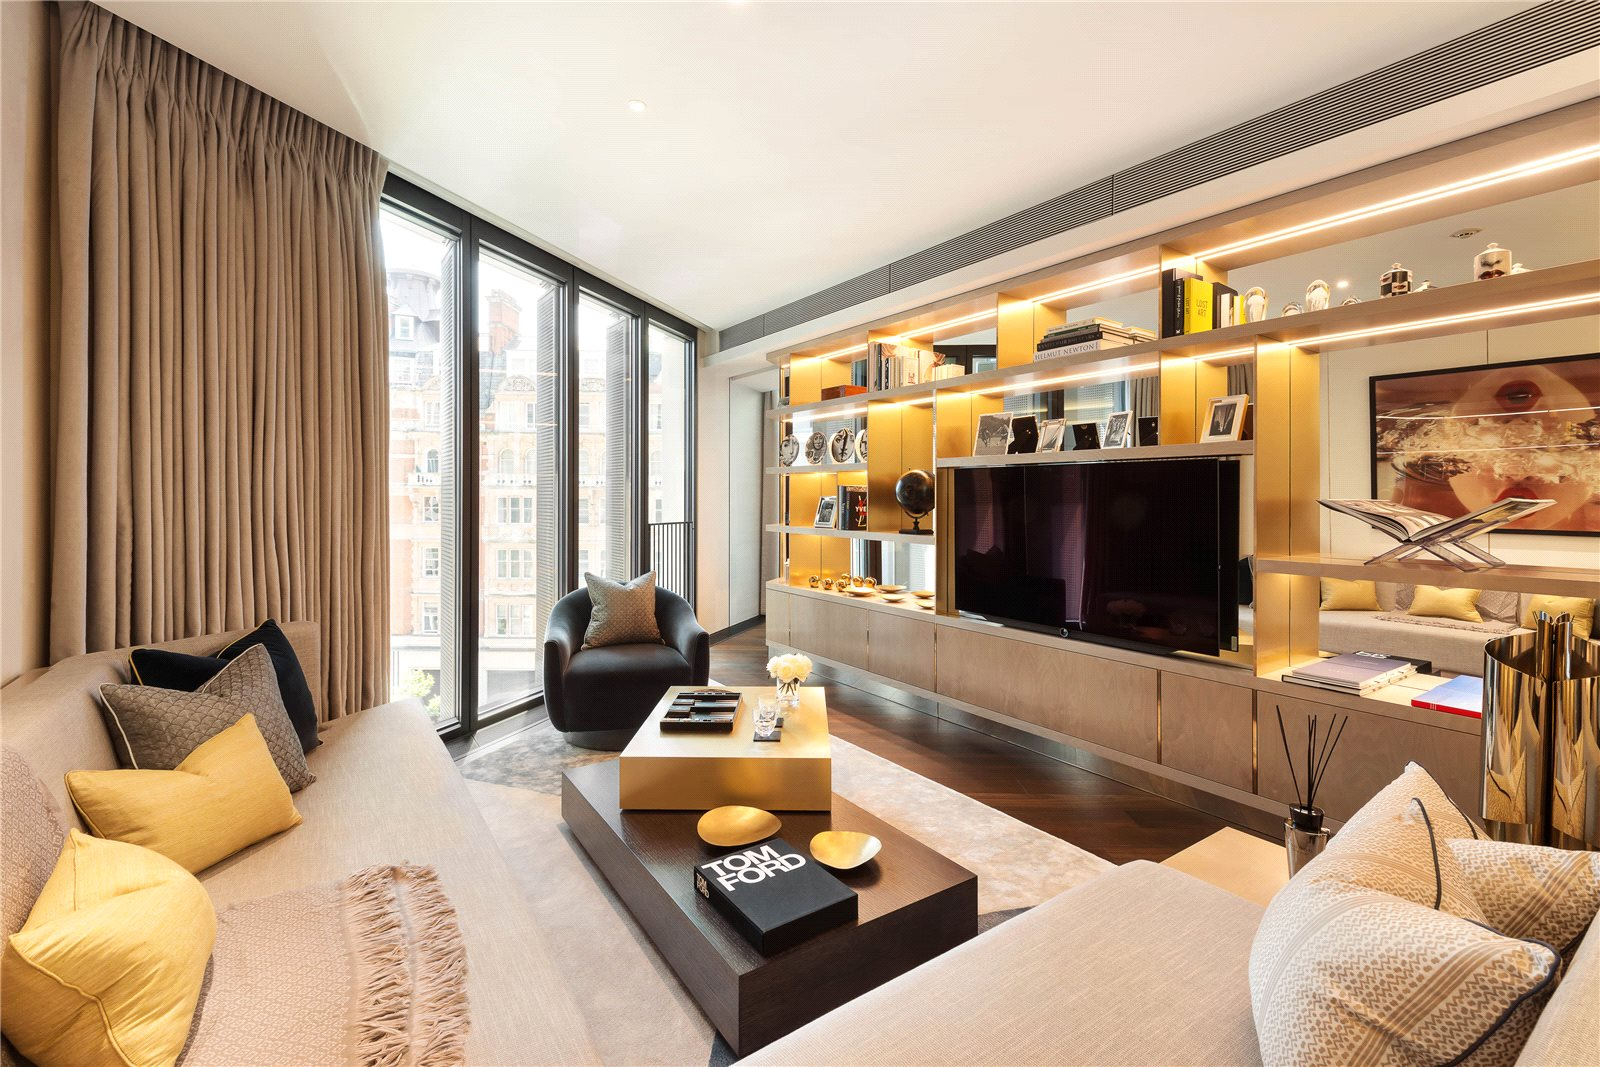 Apartments / Residences for Sale at Knightsbridge, London, SW1X London, England